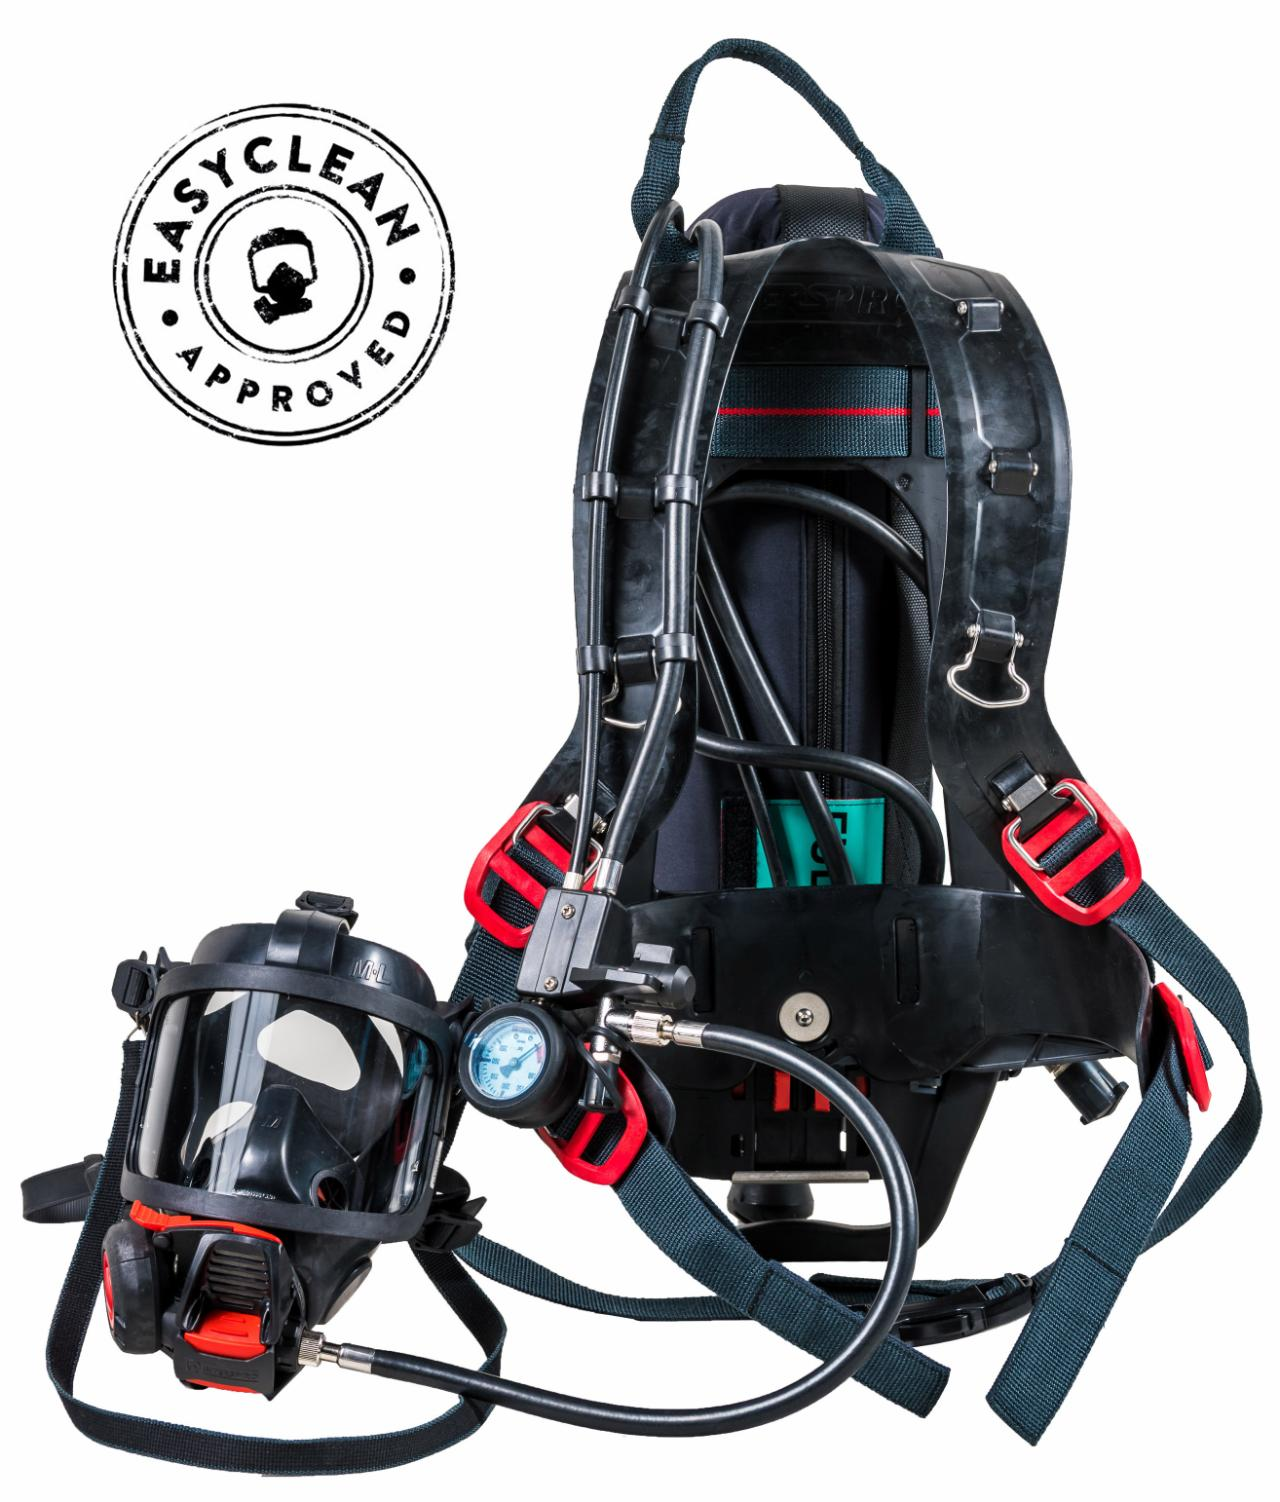 Product image - SCBA Incurve-R Single cylinder